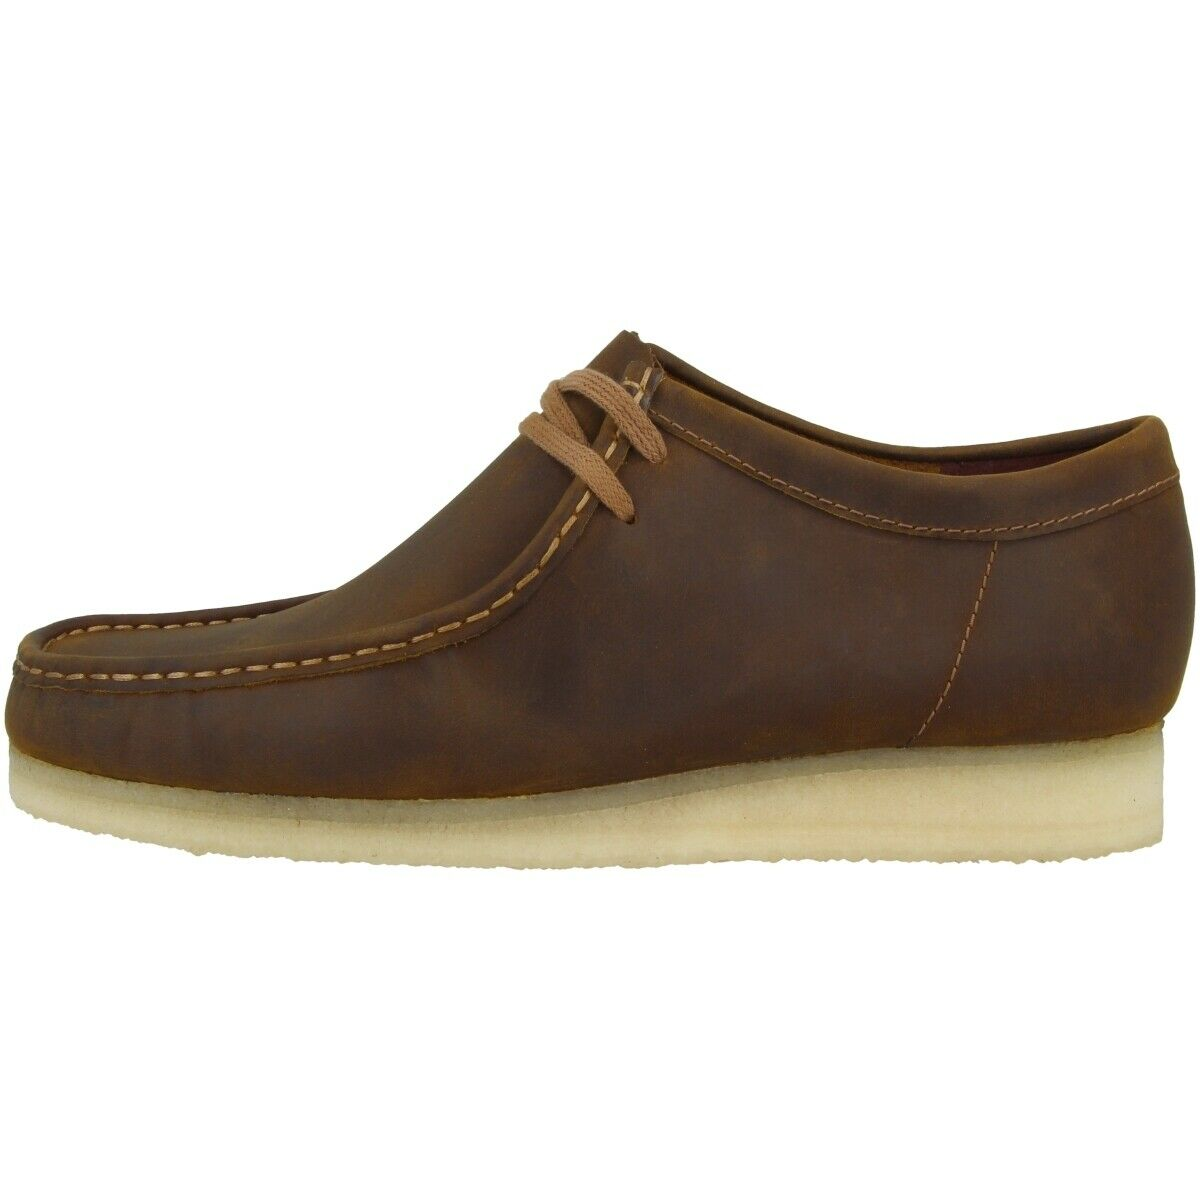 Clarks Wallabee Chaussures Hommes Chaussures Basses Cuir Chaussure Lacée Mocassins 26134200